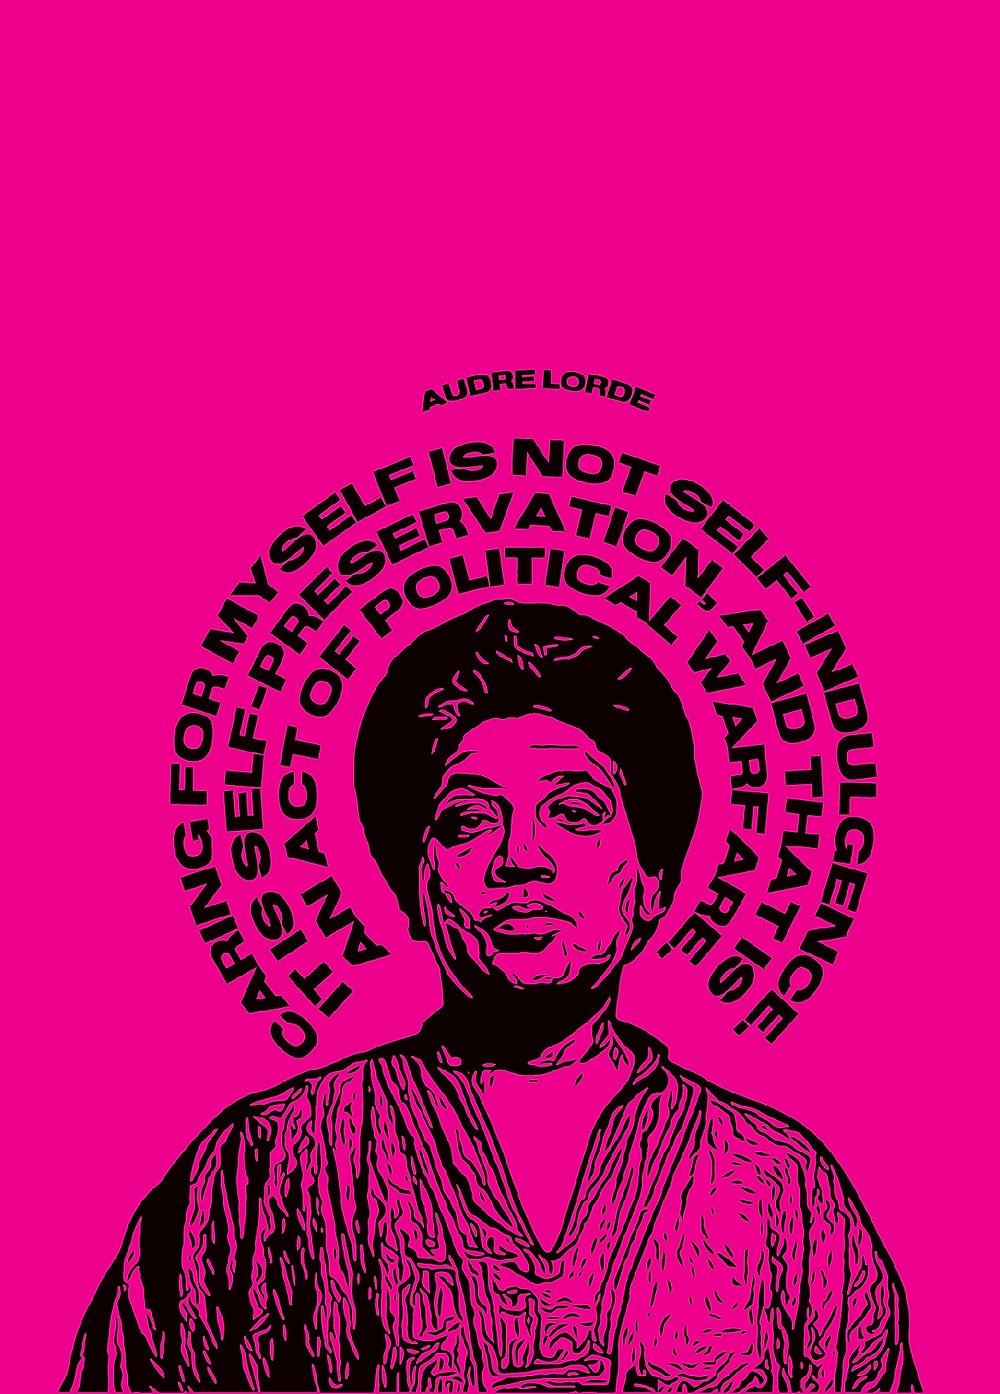 A neon pink and black print of an afro-latina woman looking intently at the viewer. He words above her head are written in spirals similar to a halo. They read 'Auore Lorde - Caring for myself is not self-indulgence. Its self preservation, and that is an act of political warfare'